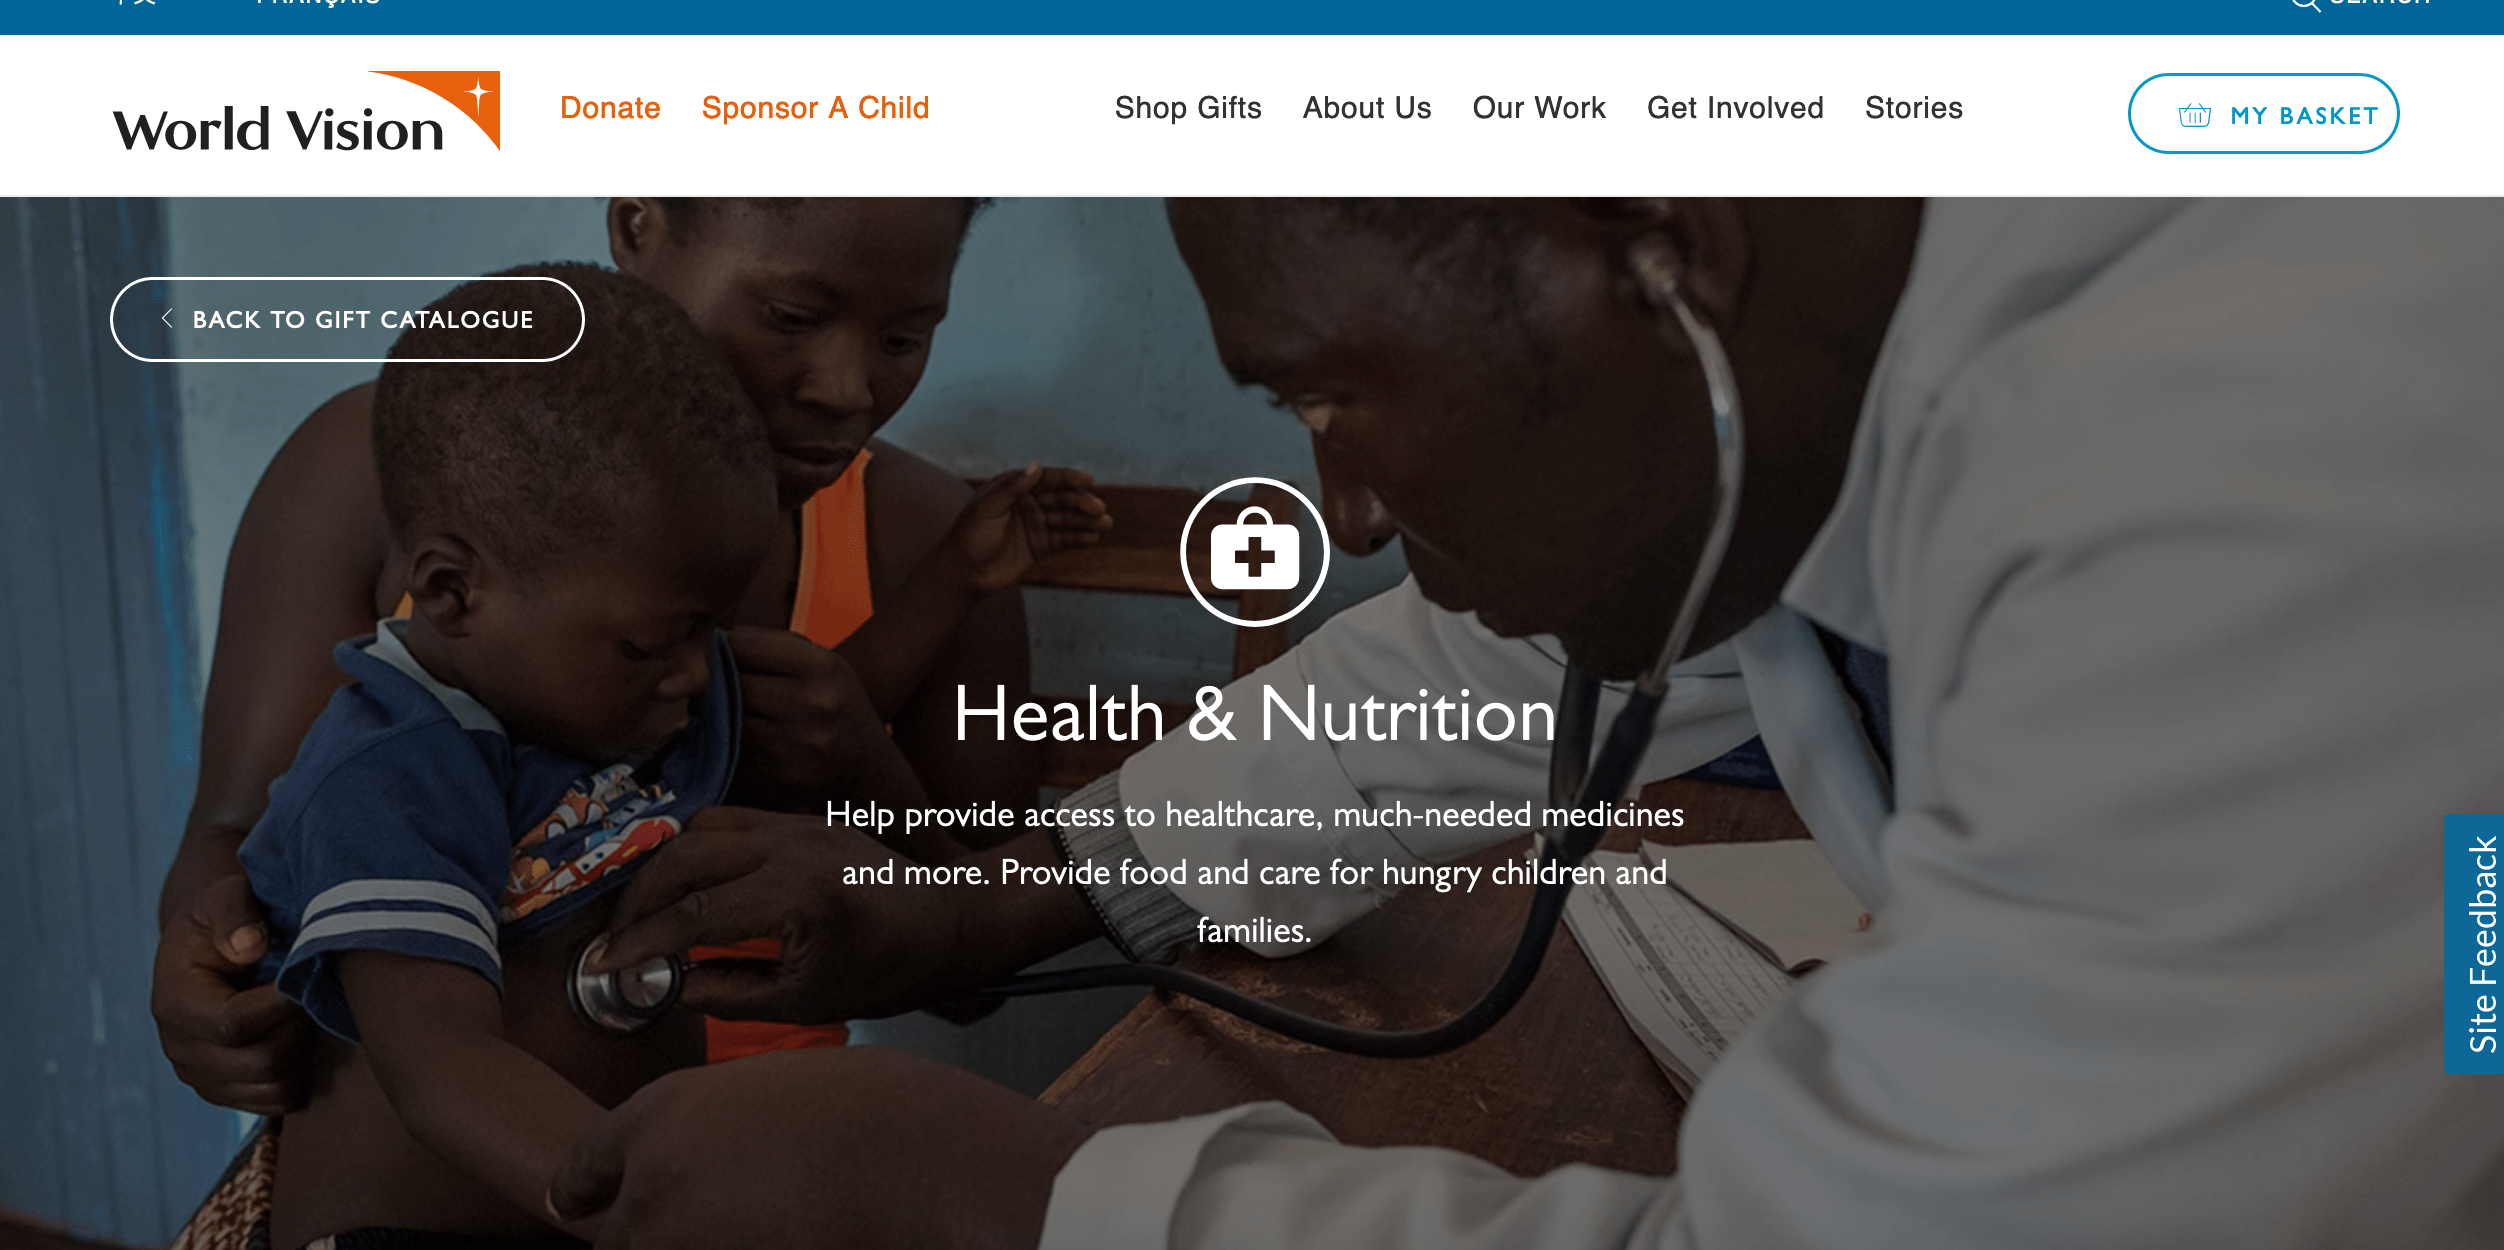 World Vision health and nutrition donations